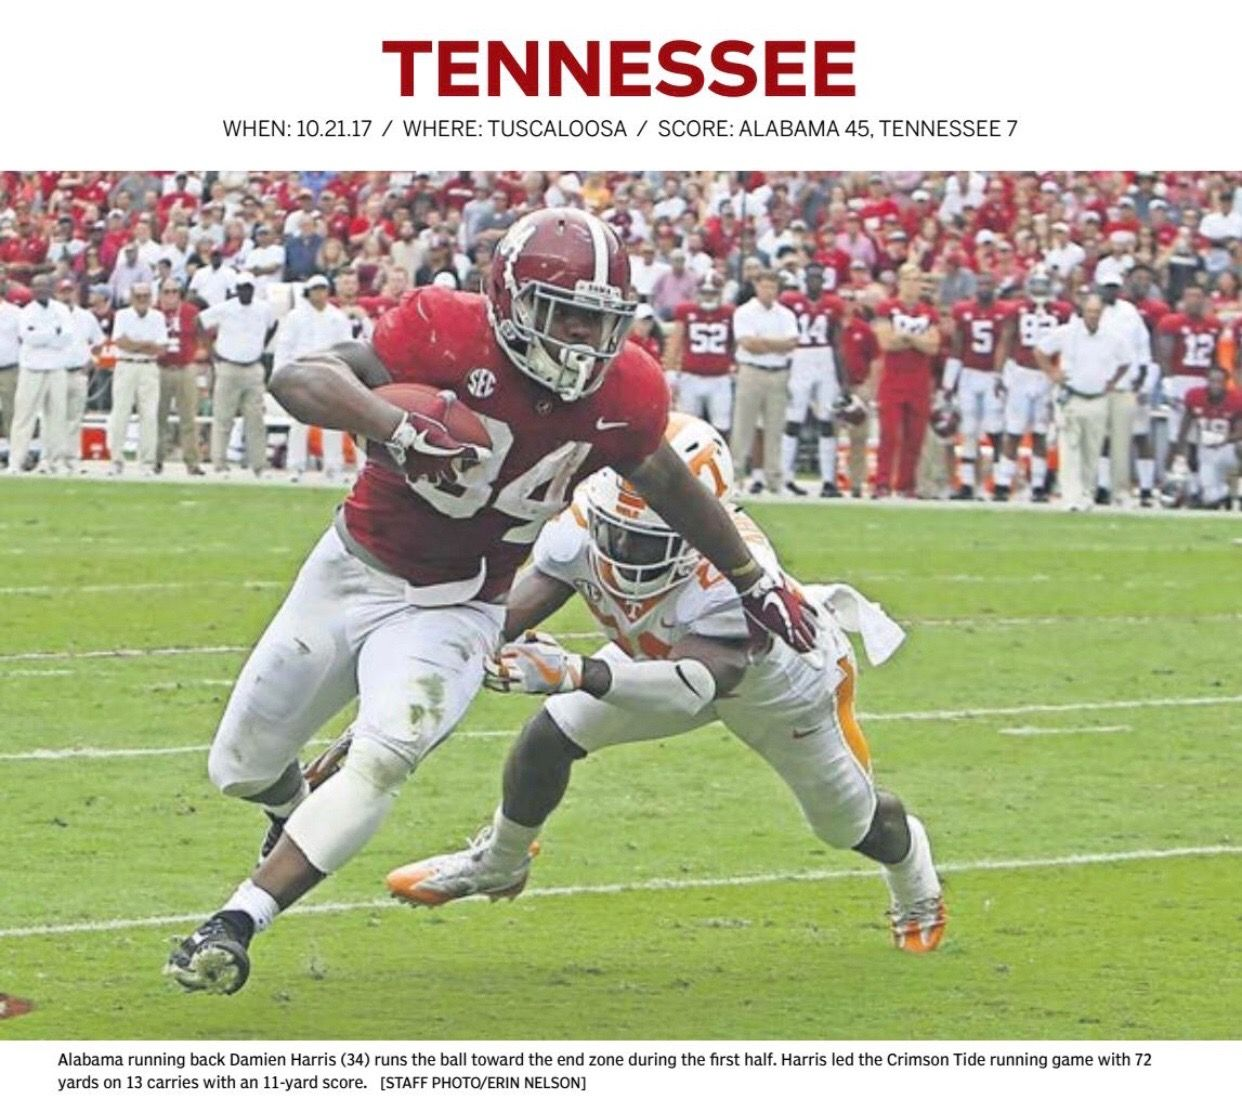 Damien Harris Vs Tennessee Recapping The 2017 National Championship Season From The Tuscaloosa Magazine Vol 16 Crimson Tide Alabama Crimson Tide Tuscaloosa